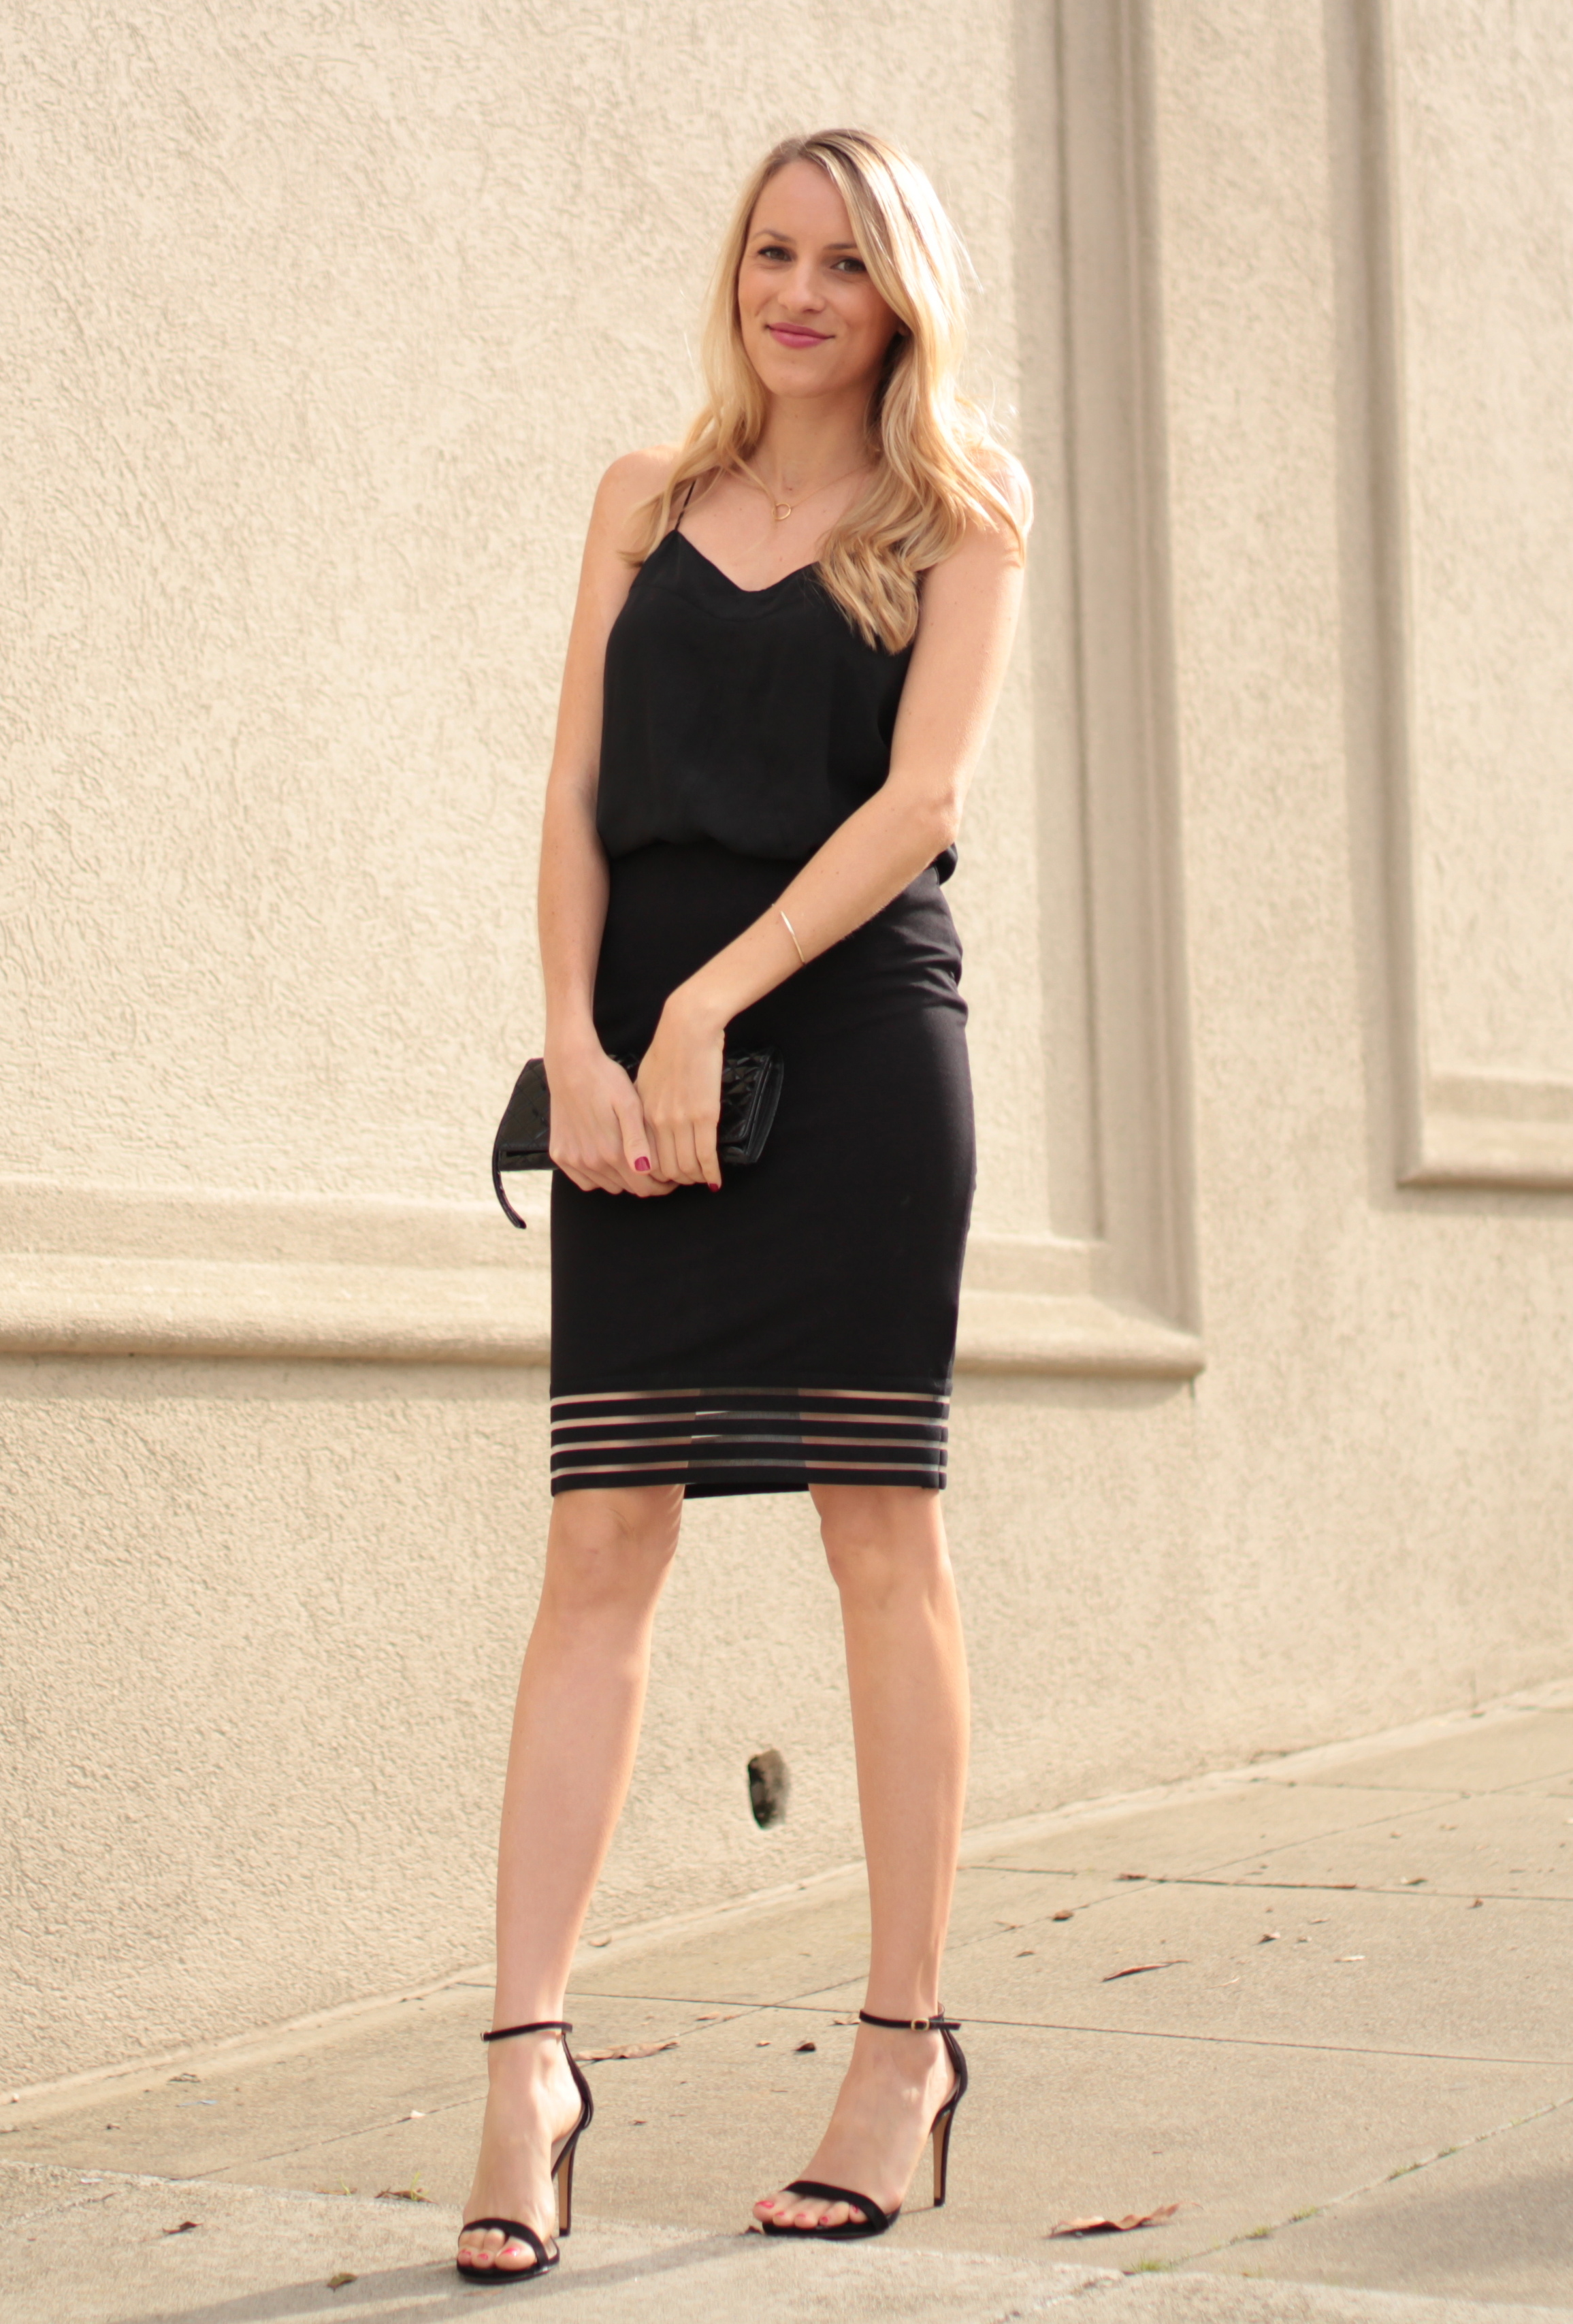 All black outfit featuring a mesh penel skirt by Fevrie